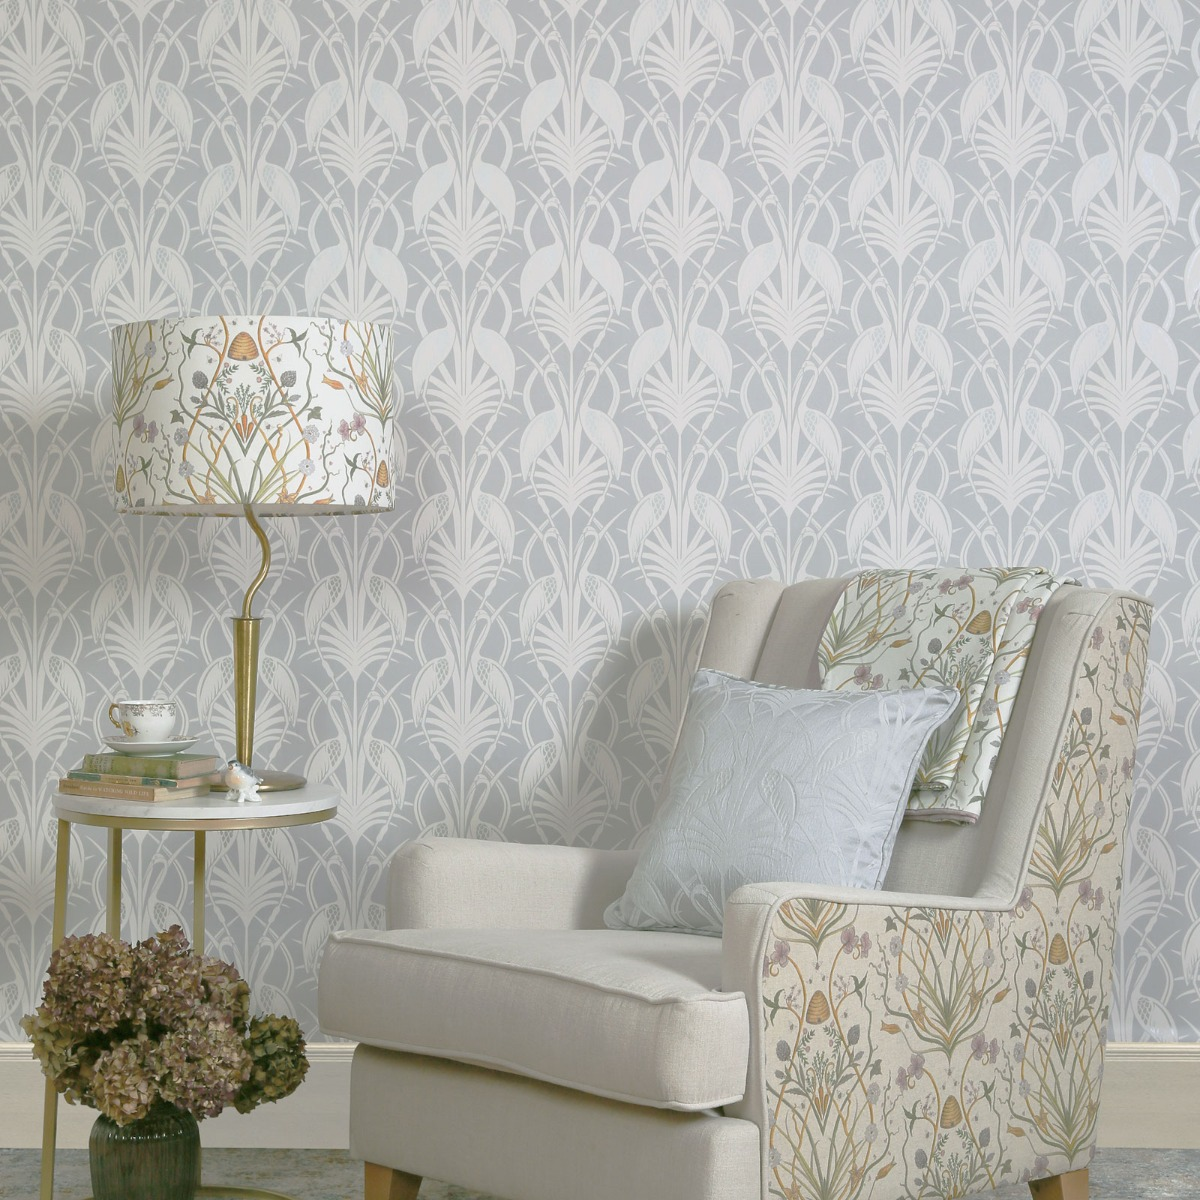 The Chateau by Angel Strawbridge Deco Heron Wallpaper Grey CHWP1B